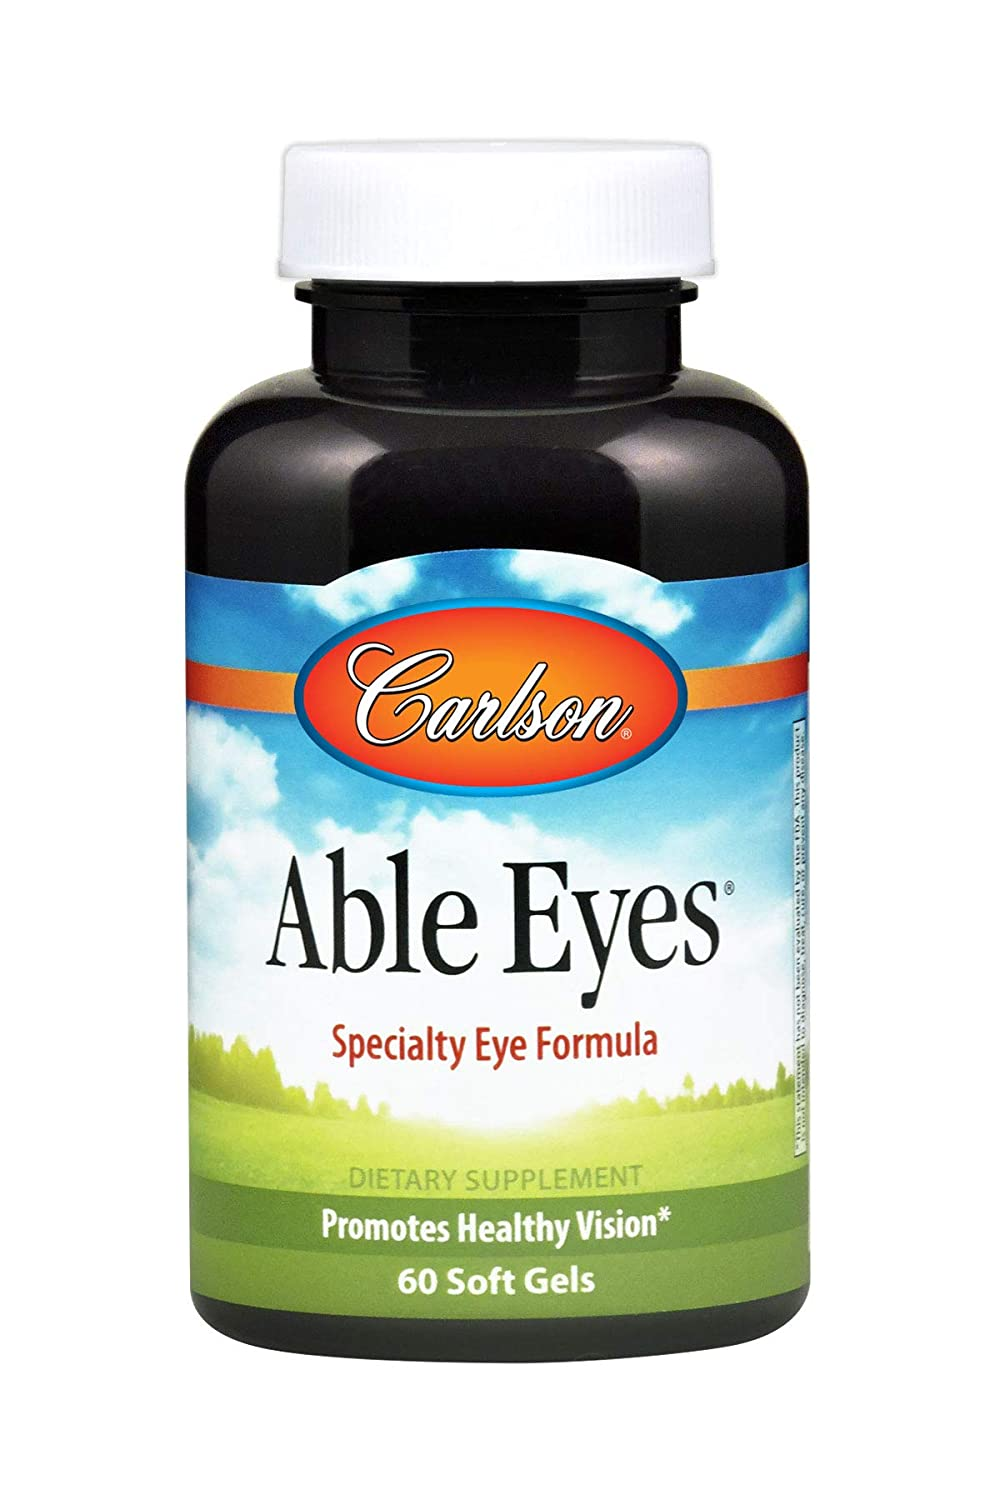 Carlson – Able Eyes, Specialty Eye Formula, Promotes Healthy Vision, 60 Soft gels